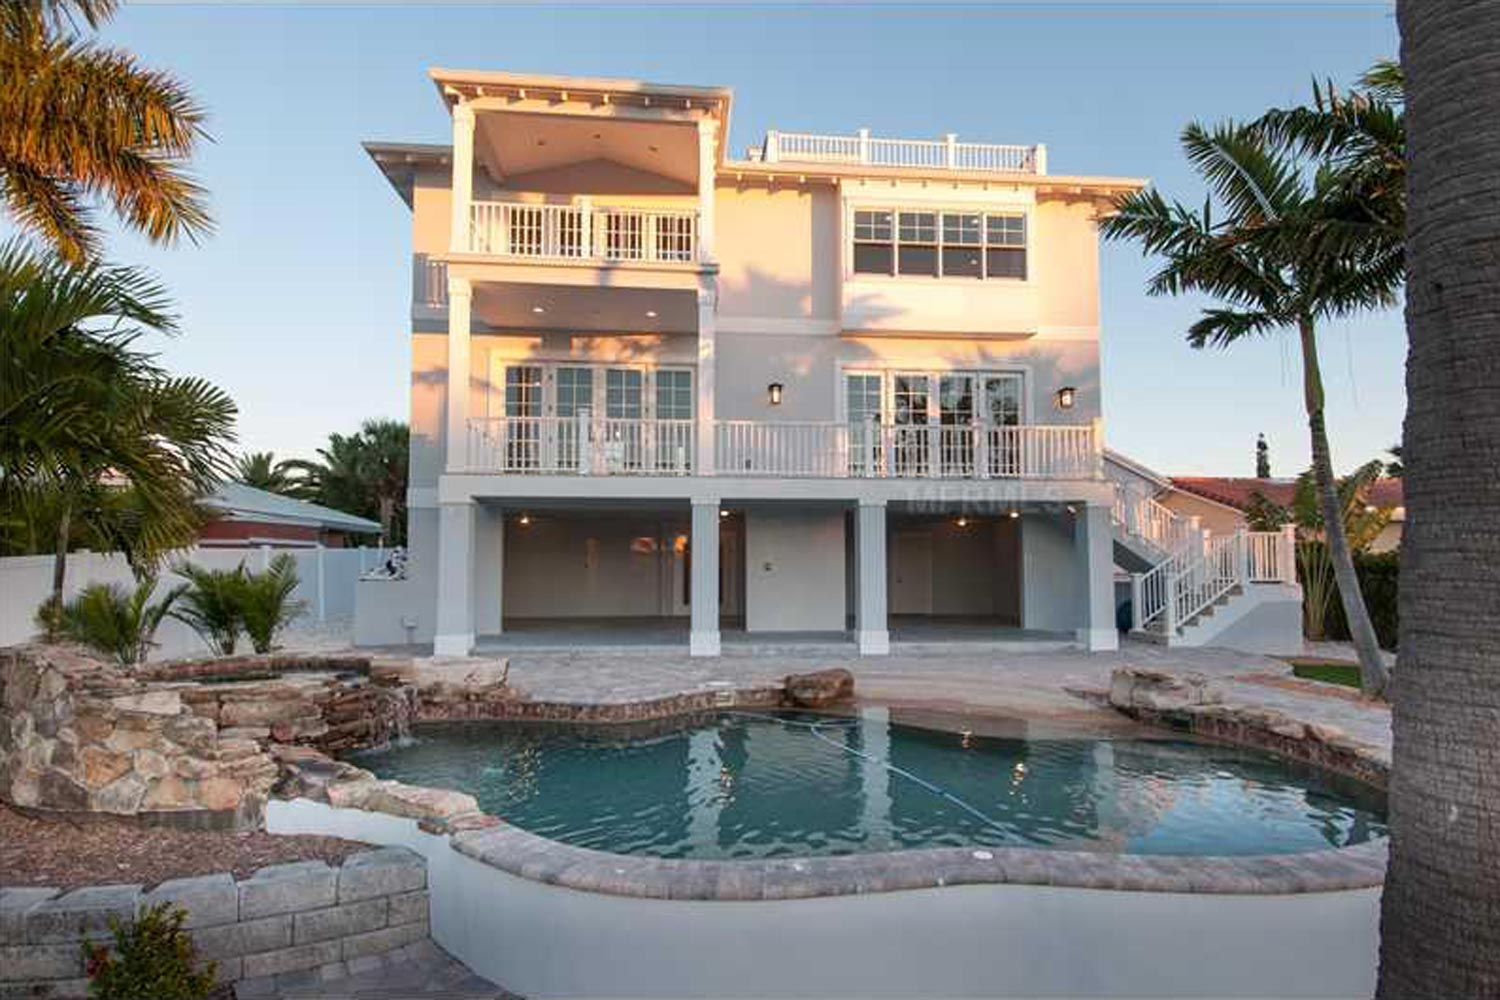 Three level beach house located on a canal off the Gulf of Mexico in St. Pete Beach.